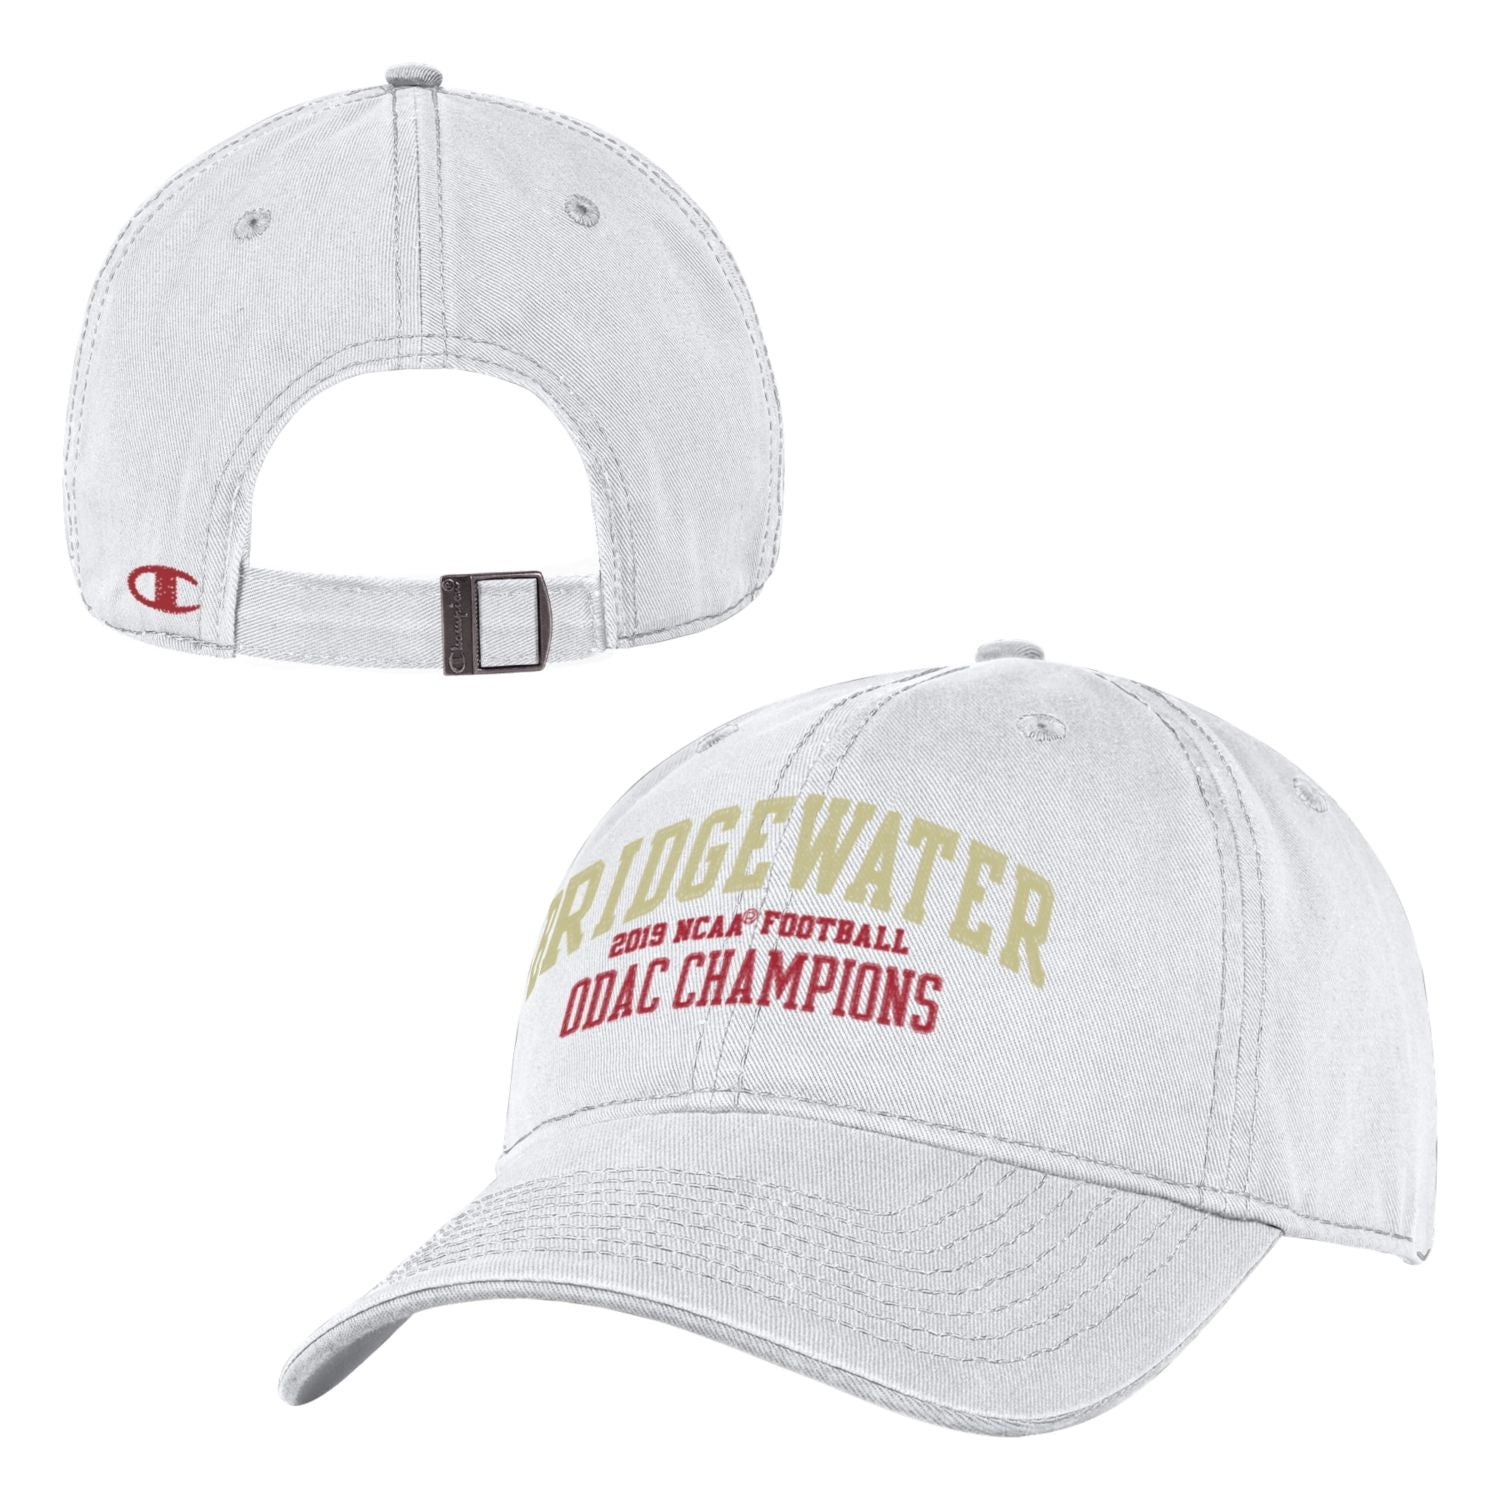 Bridgewater College White ODAC Champions Football Hat